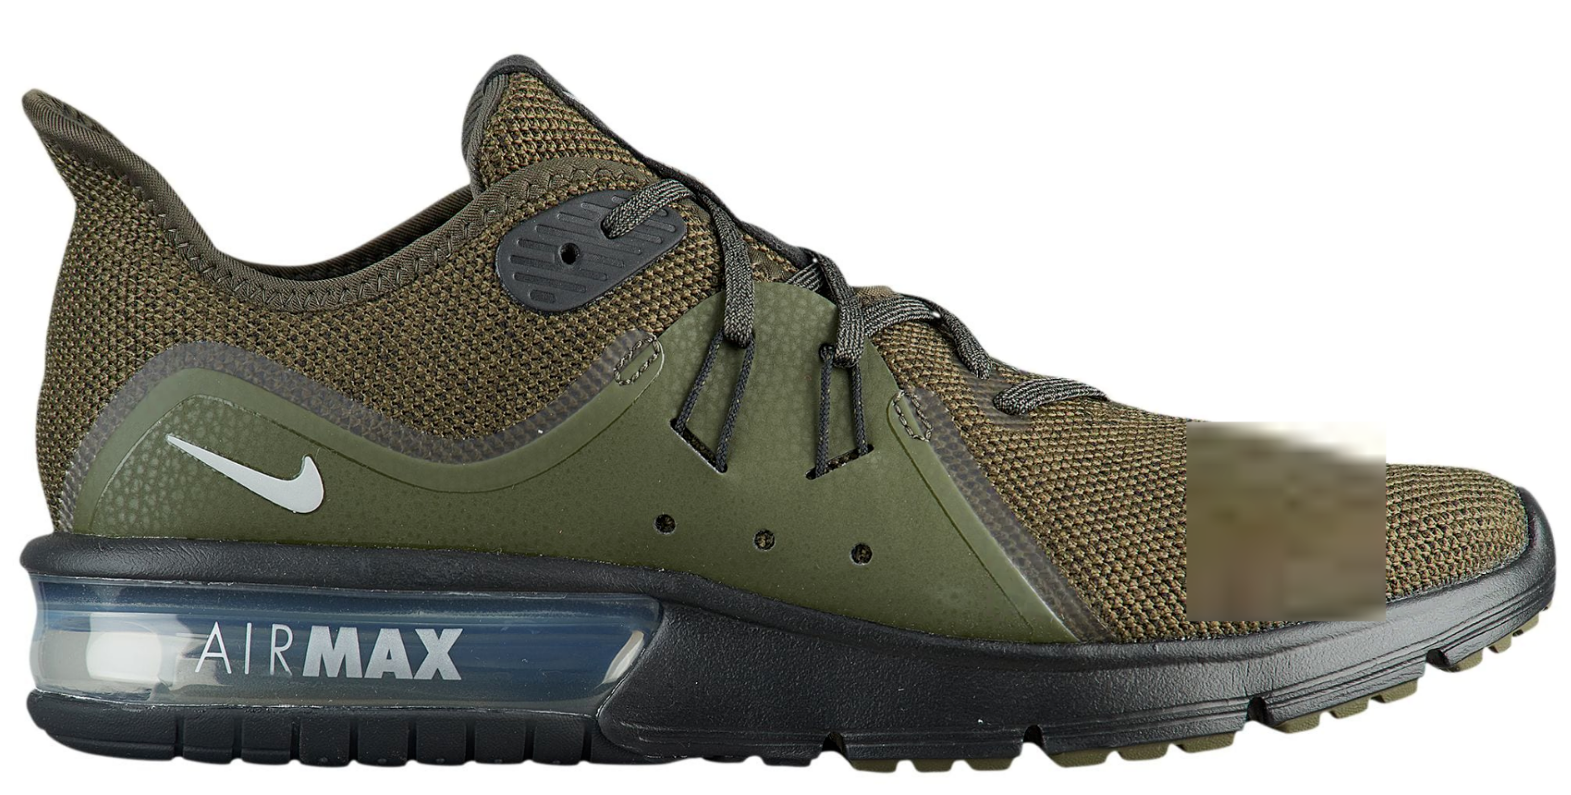 Nike Air Max Sequent 3 Men's Running shoes 921694 301 301 301 Cargo Khaki   Silv. Size 8 8f541c